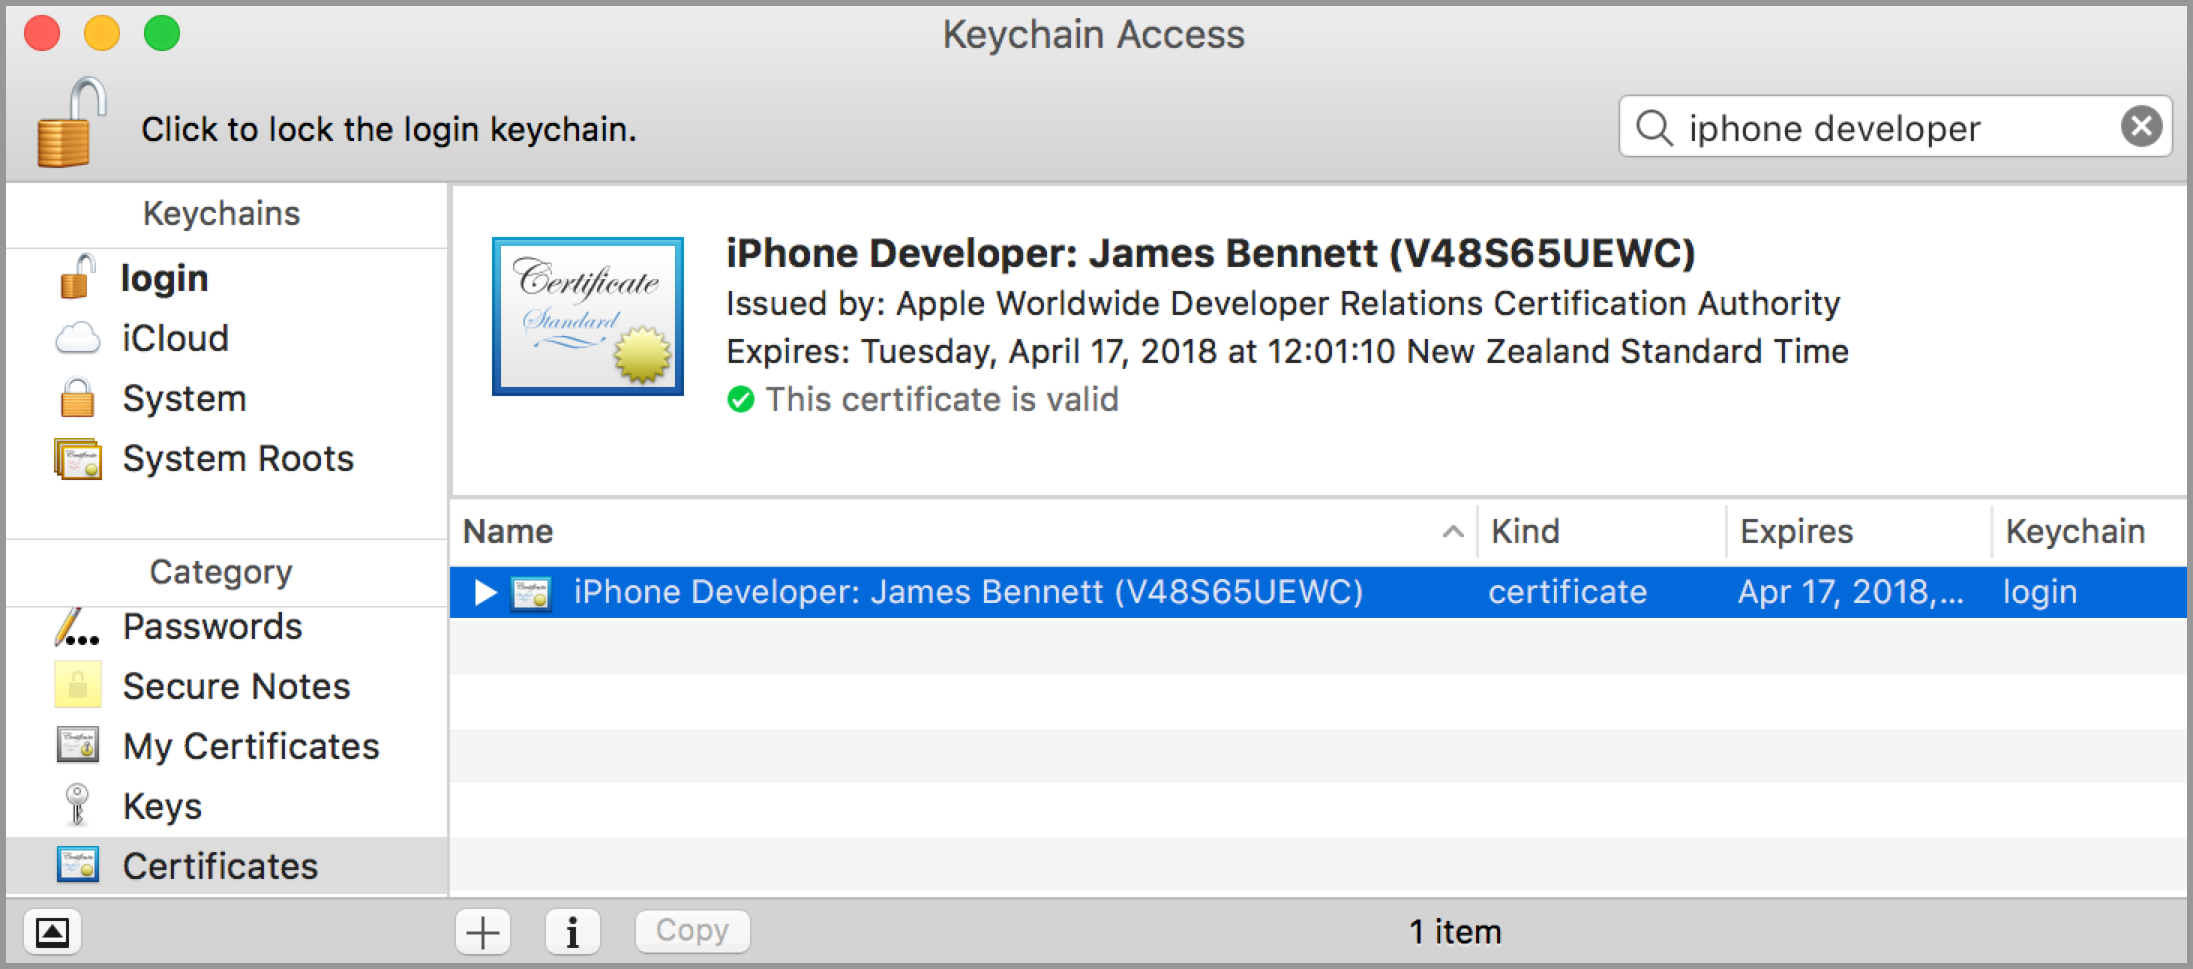 Use Keychain Access to export your certificate